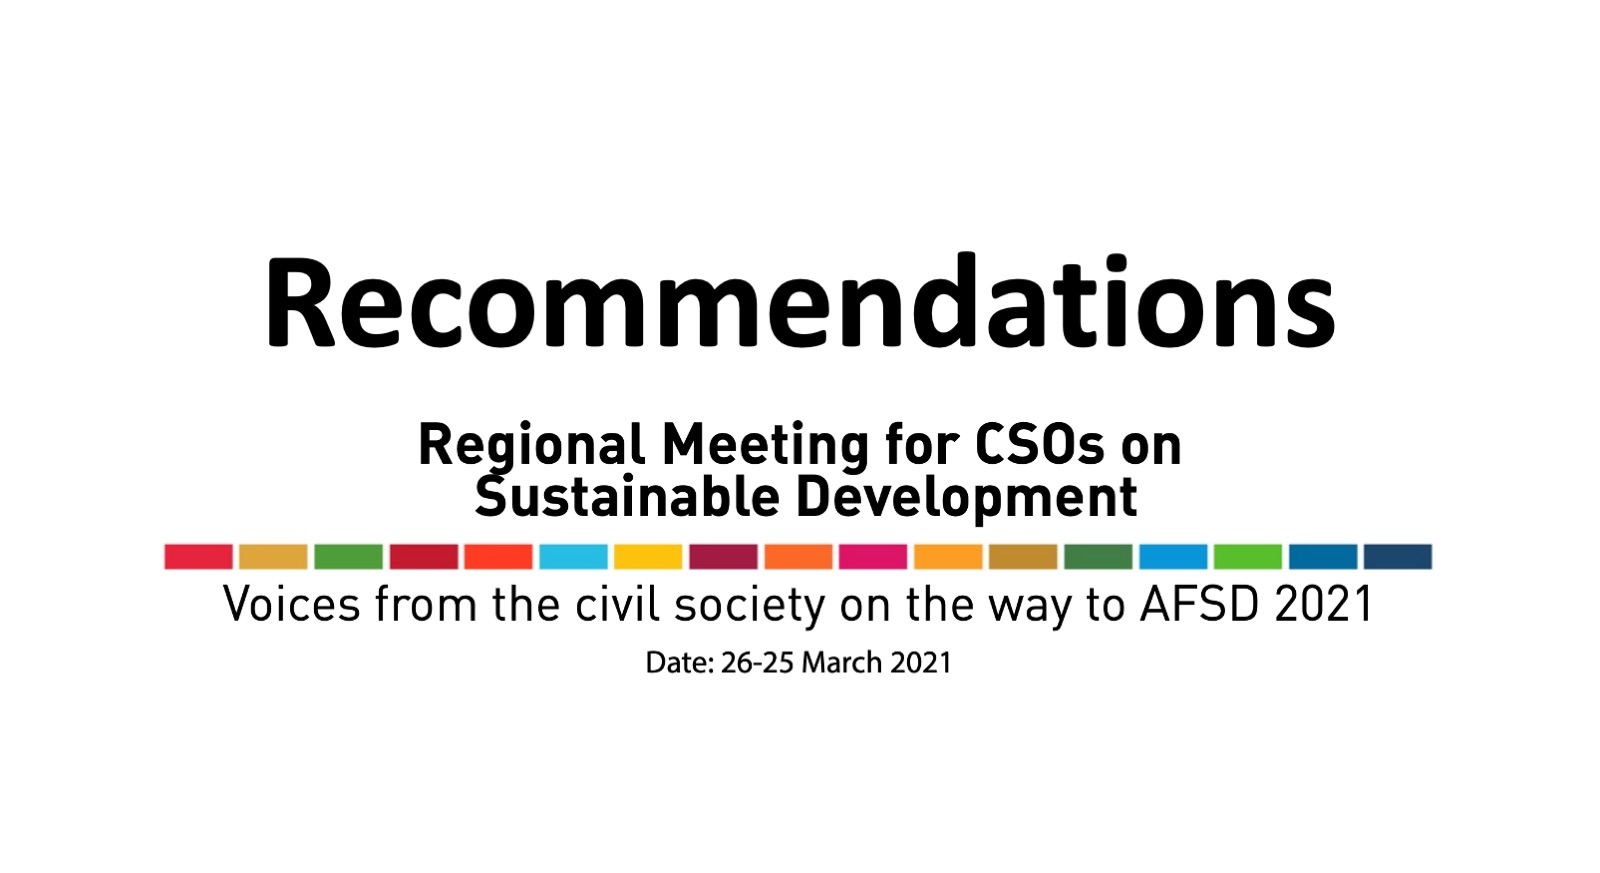 Recommendations: Civil Society Regional Meeting on Sustainable Development in the Arab Region